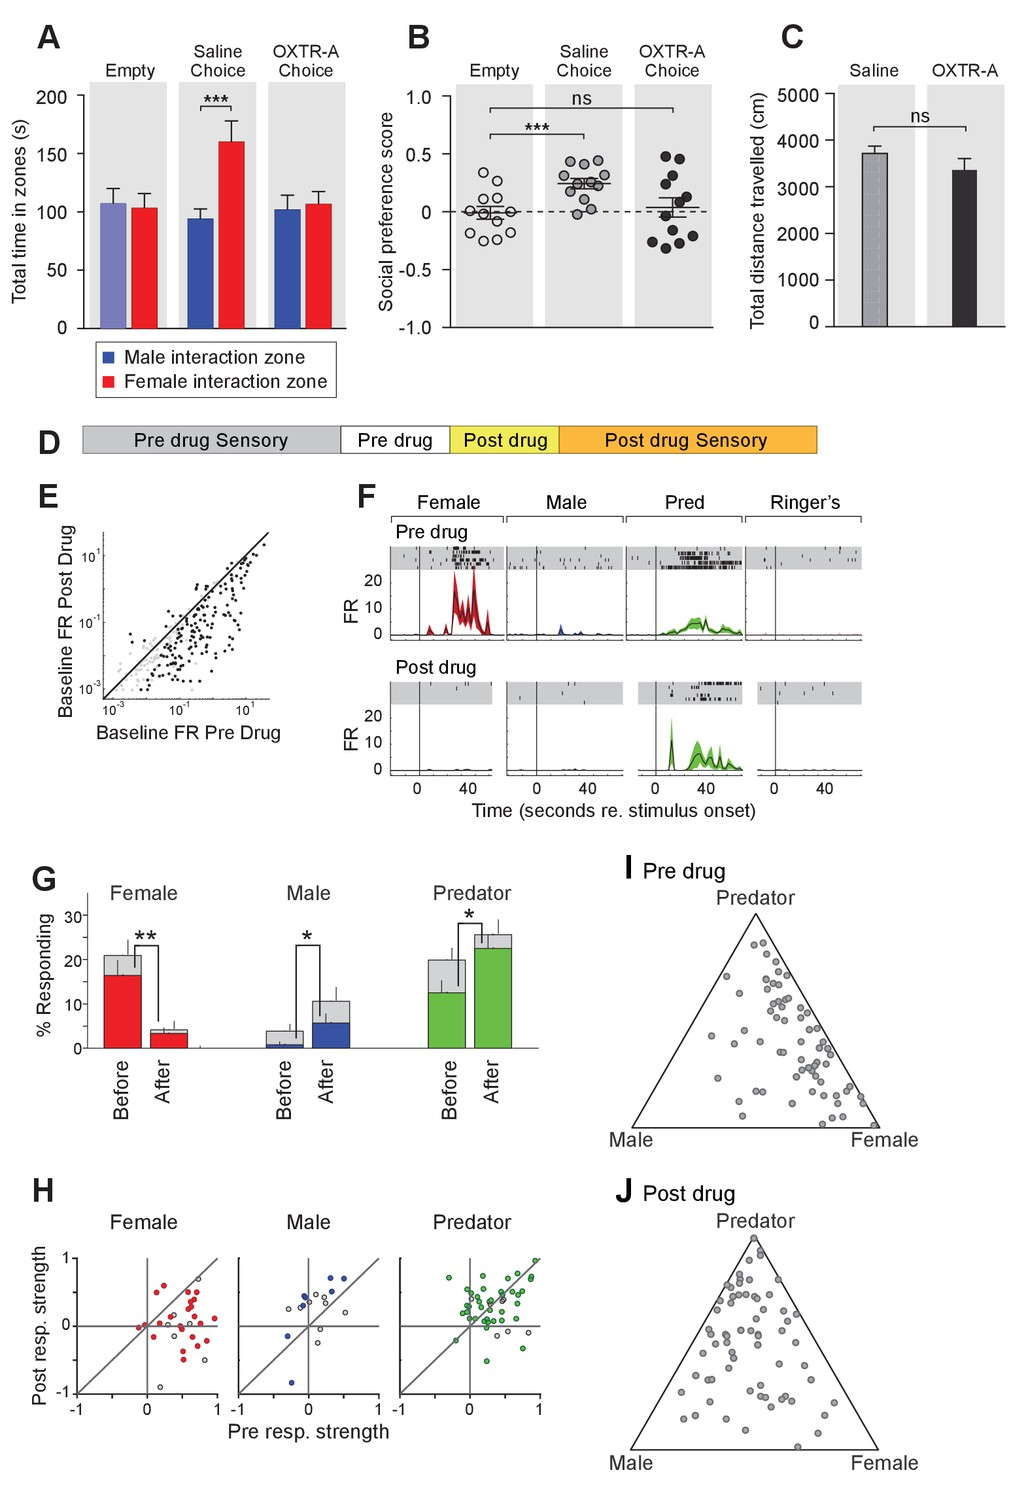 Oxytocin Signaling In The Medial Amygdala Is Required For Sex Wiring Diagram Social Acute Pharmacological Inhibition Of Oxtr Leads To Impaired Interaction Preference And Altered Neuronal Response Profile Mea